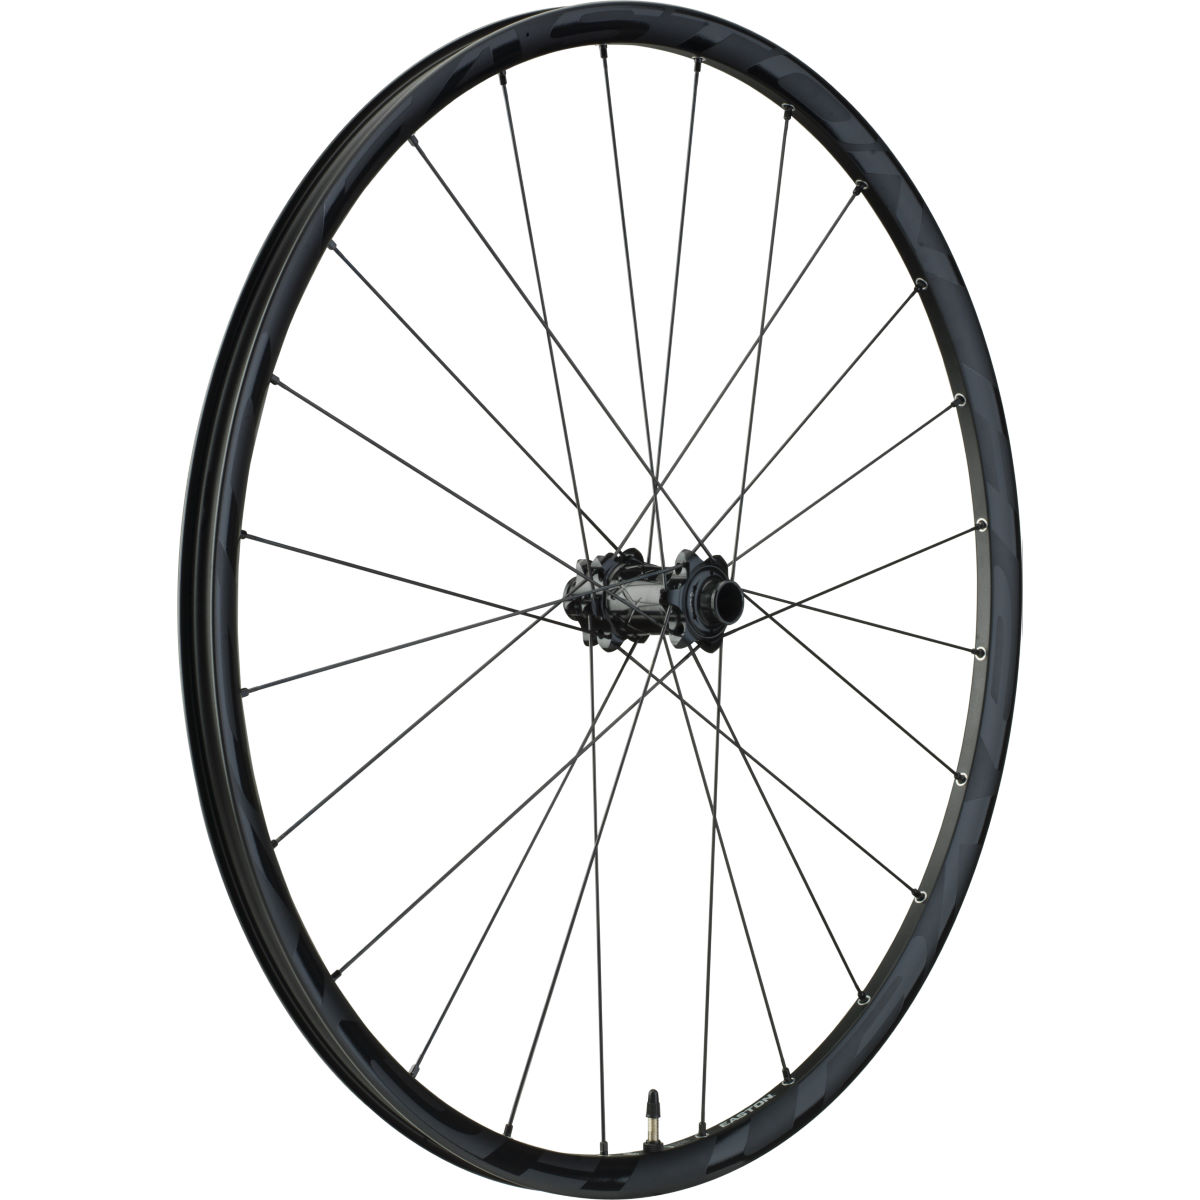 Roue avant VTT Easton Haven 29 pouces (alliage) - 29'' Noir